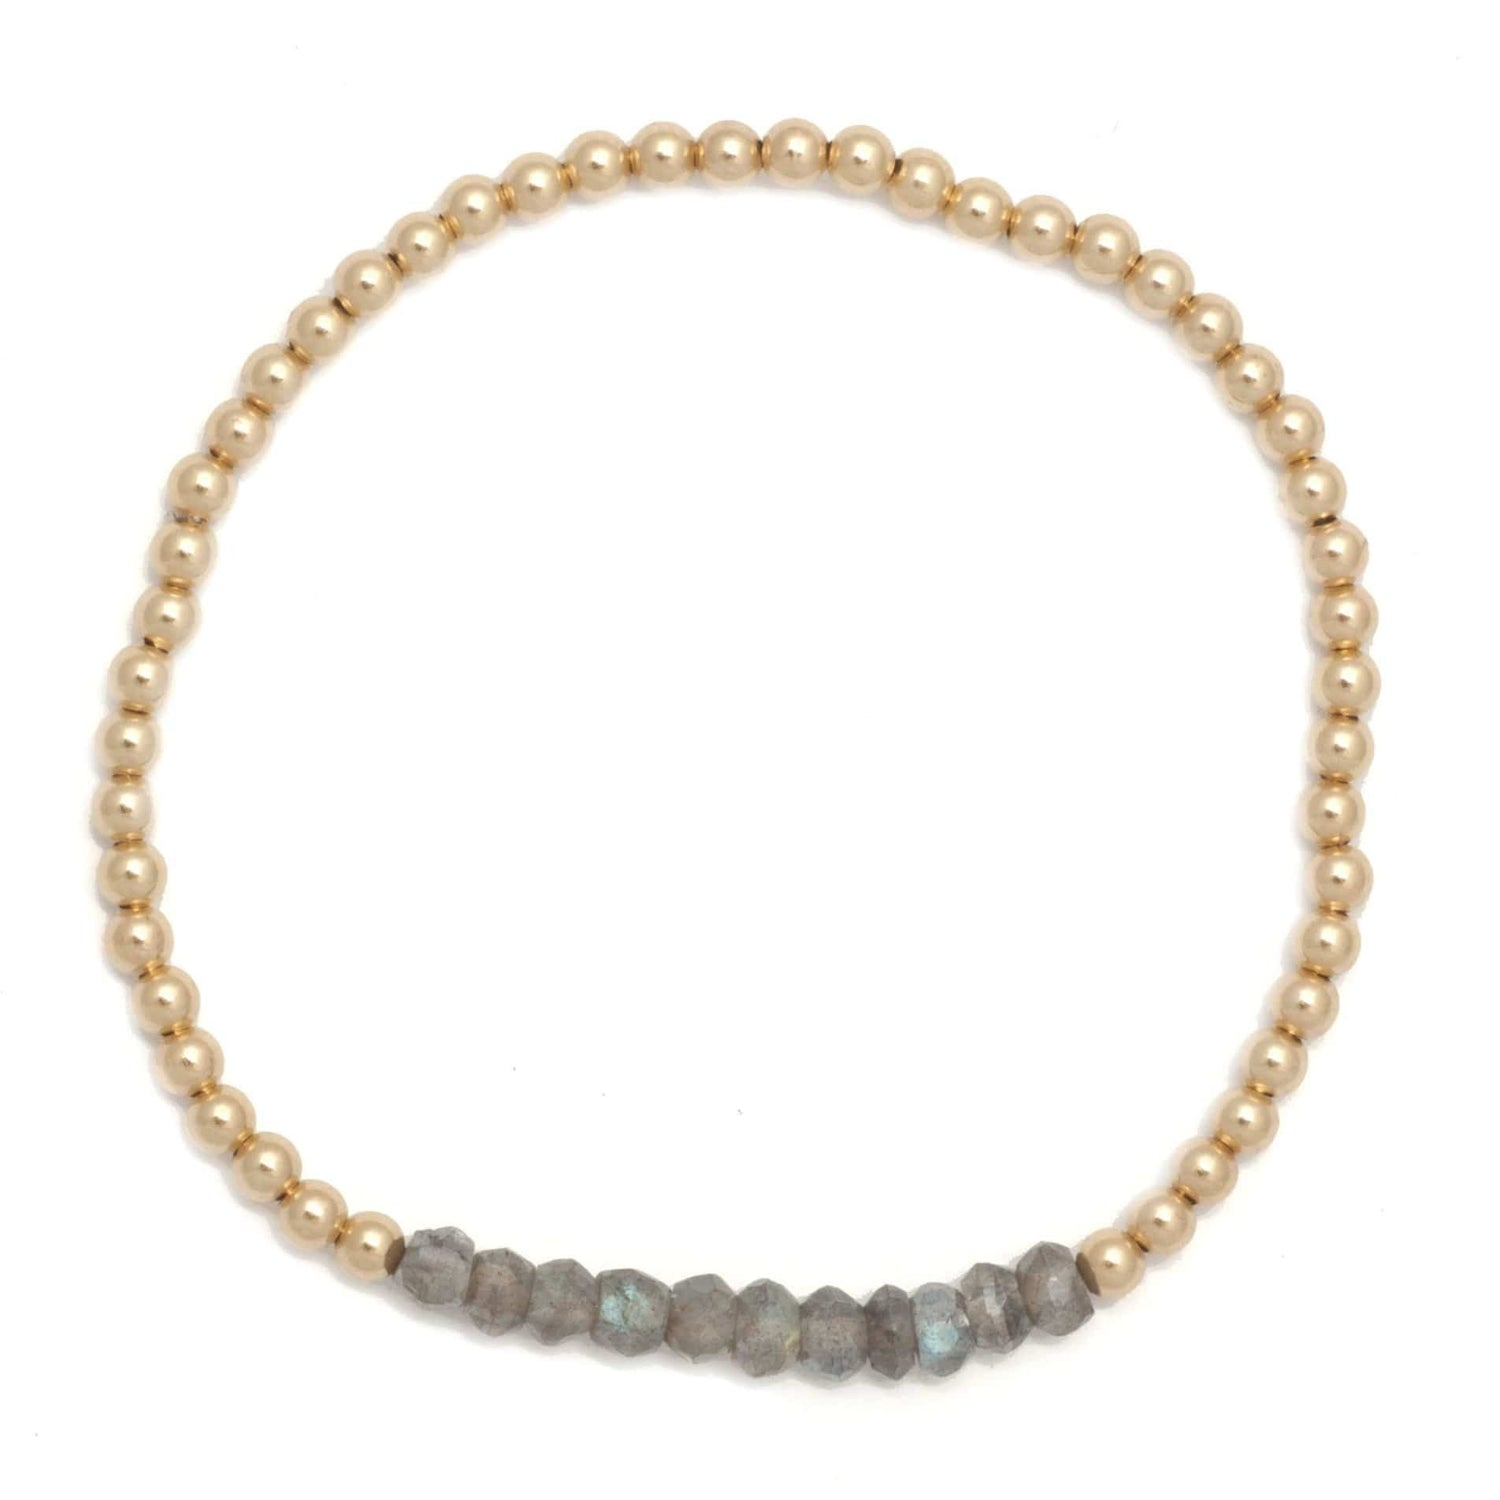 Karen Lazar 3mm Labradorite Gold Bead Layering Bracelet - Curated Los Angeles